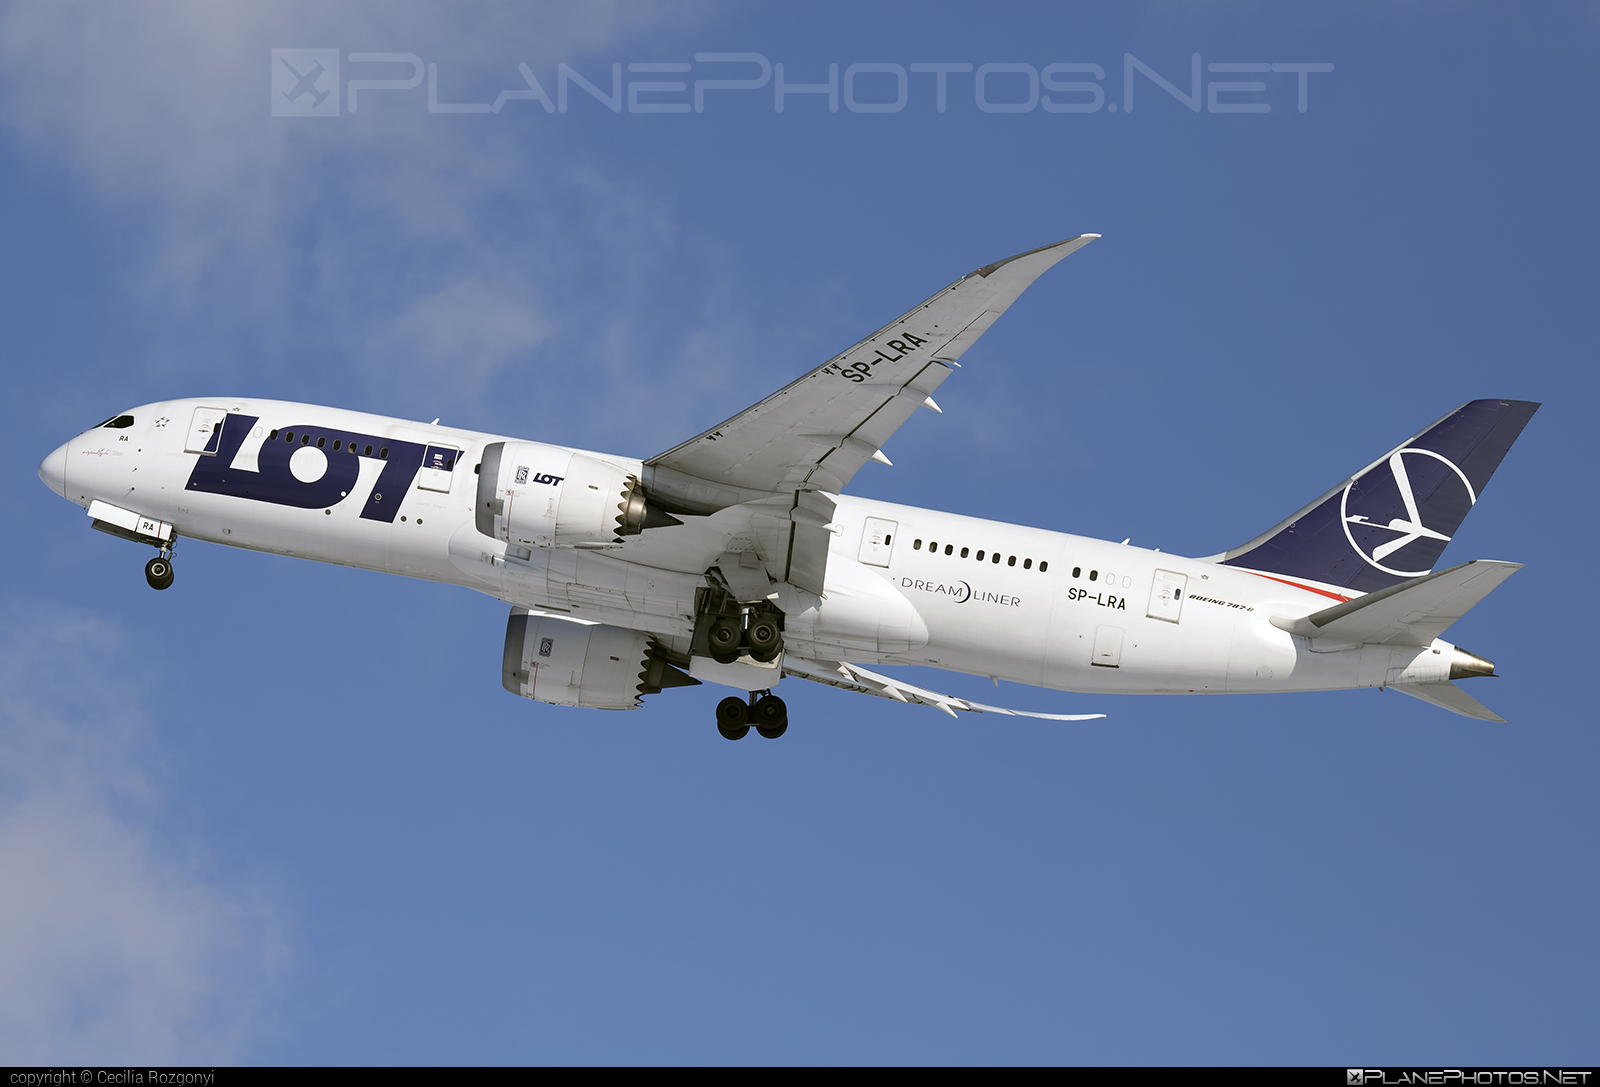 Boeing 787-8 Dreamliner - SP-LRA operated by LOT Polish Airlines #b787 #boeing #boeing787 #dreamliner #lot #lotpolishairlines